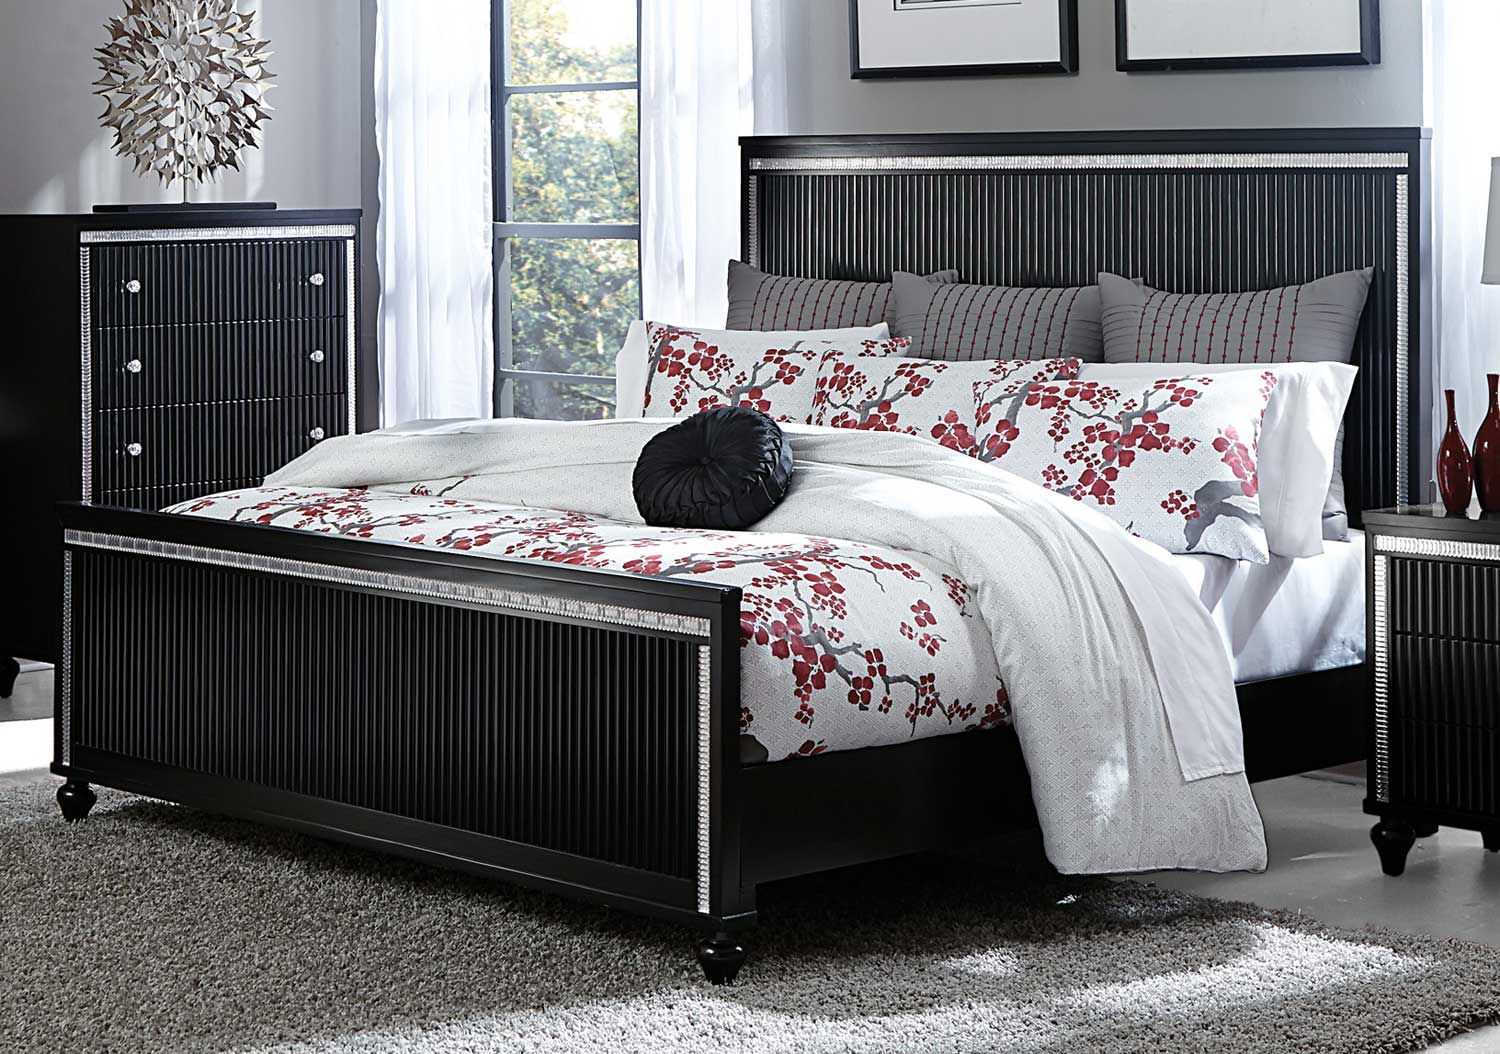 Homelegance Sakura Panel Bed - Black